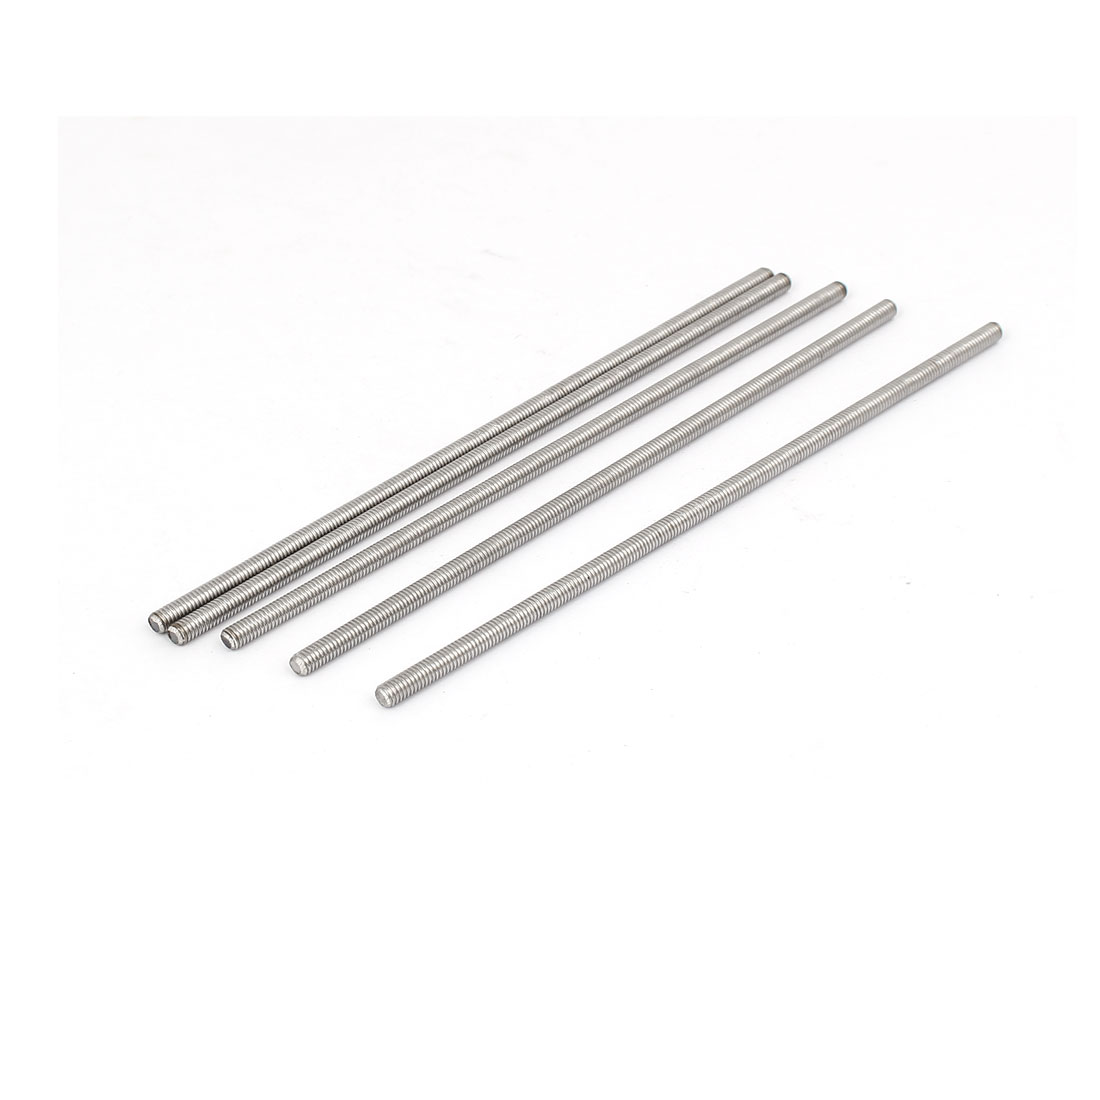 M4 x 140mm 304 Stainless Steel Fully Threaded Rod Bar Studs Silver Tone 5 Pcs